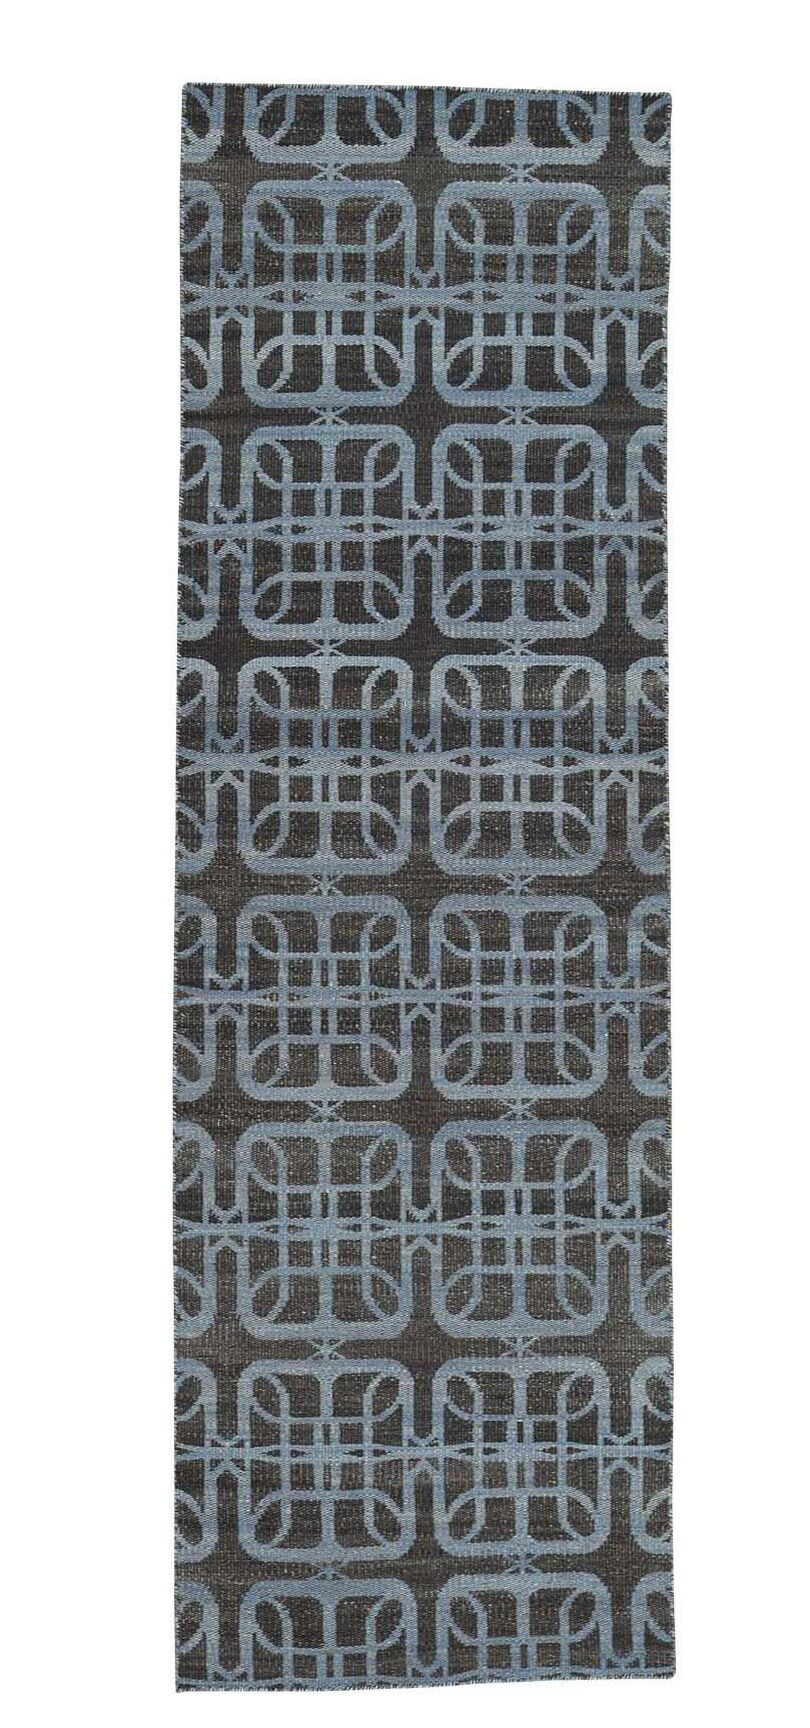 Durie Kilim Reversible Flat Weave Hand-Knotted Silver Blue/Chocolate Brown Area Rug